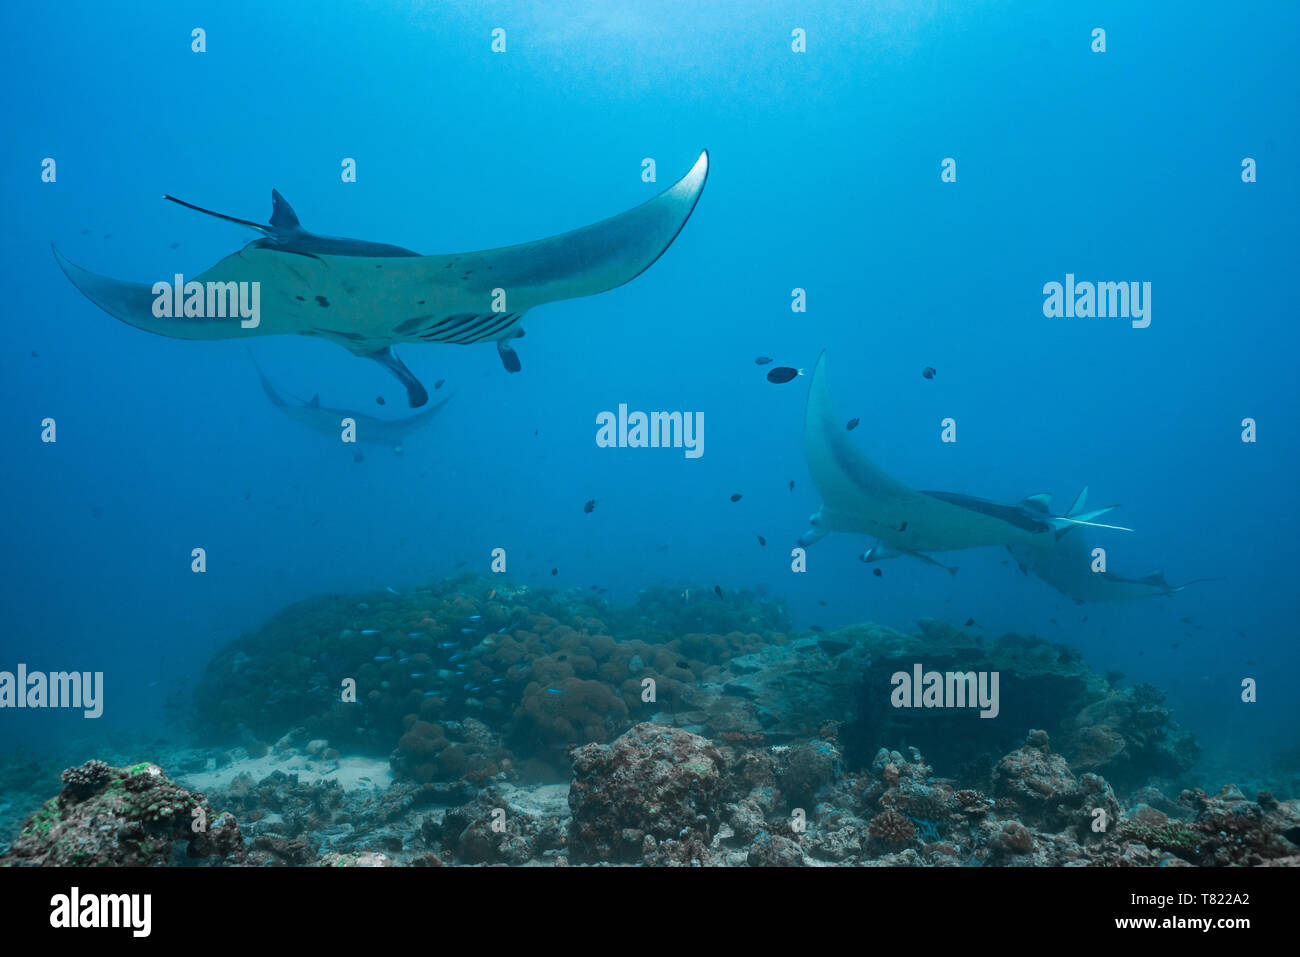 manta rays flying through the water of the maledives with blue background - Stock Image